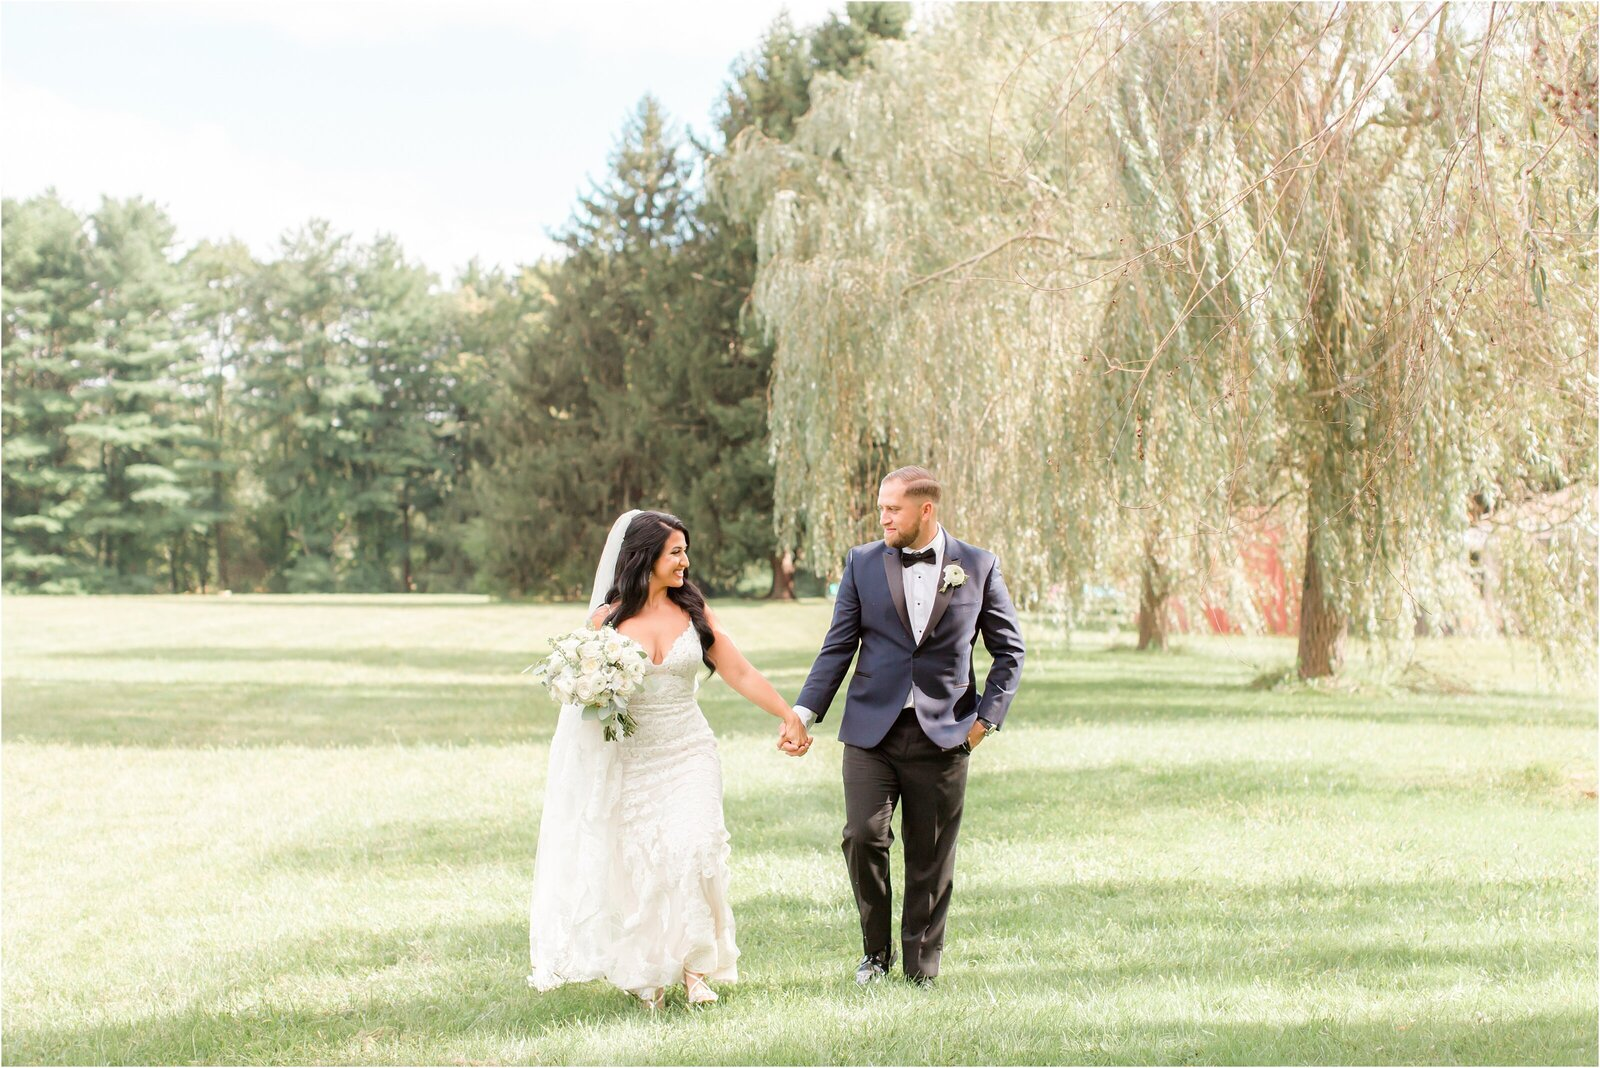 nj-wedding-photographer-portfolio-2020_0101